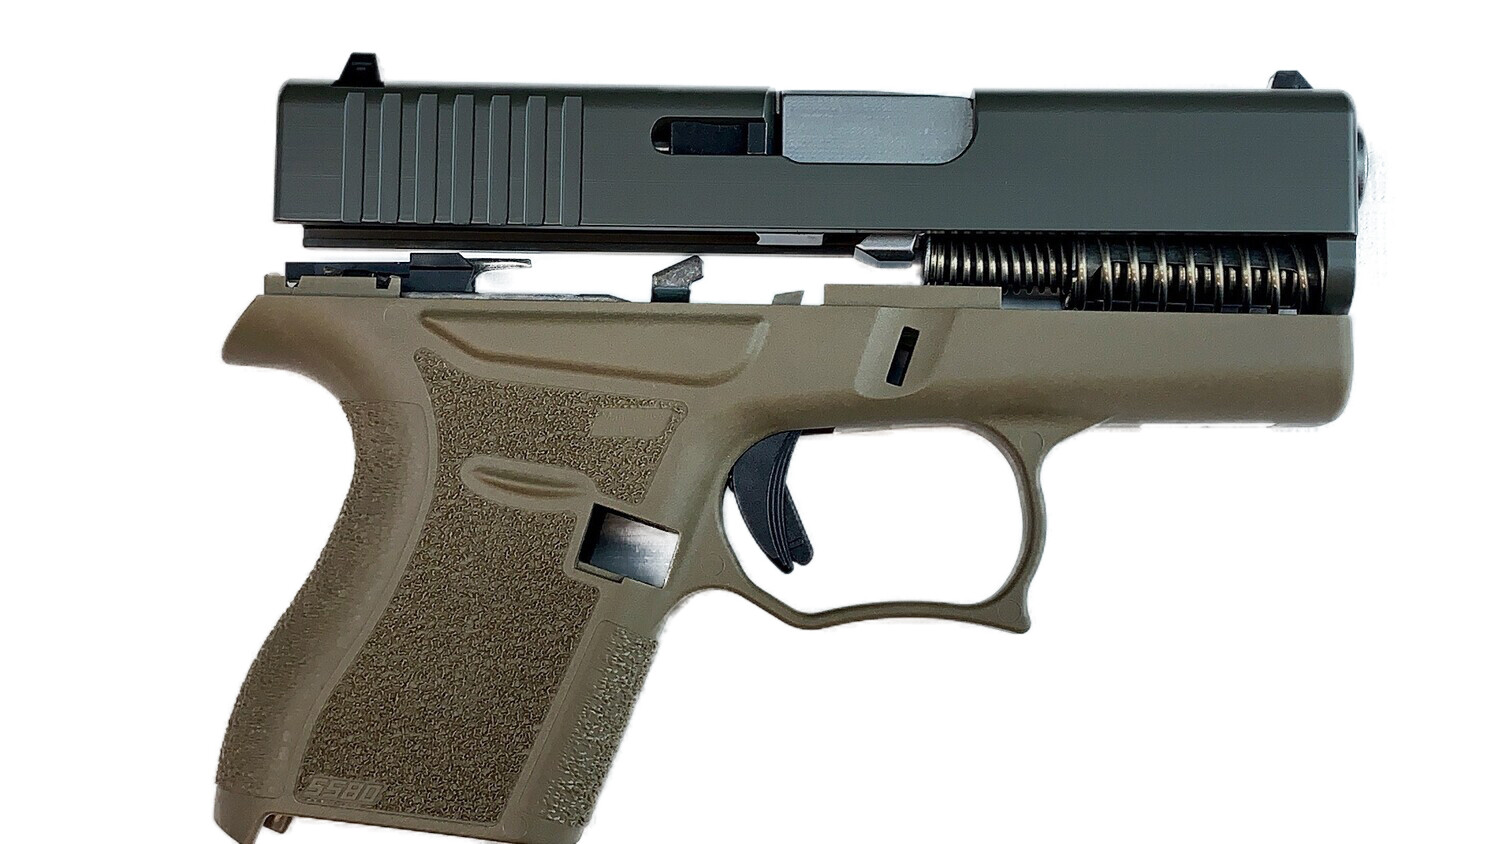 80% Glock 43 Subcompact Full Pistol Build Kit FDE / BLK - FRAME NOT INCLUDED